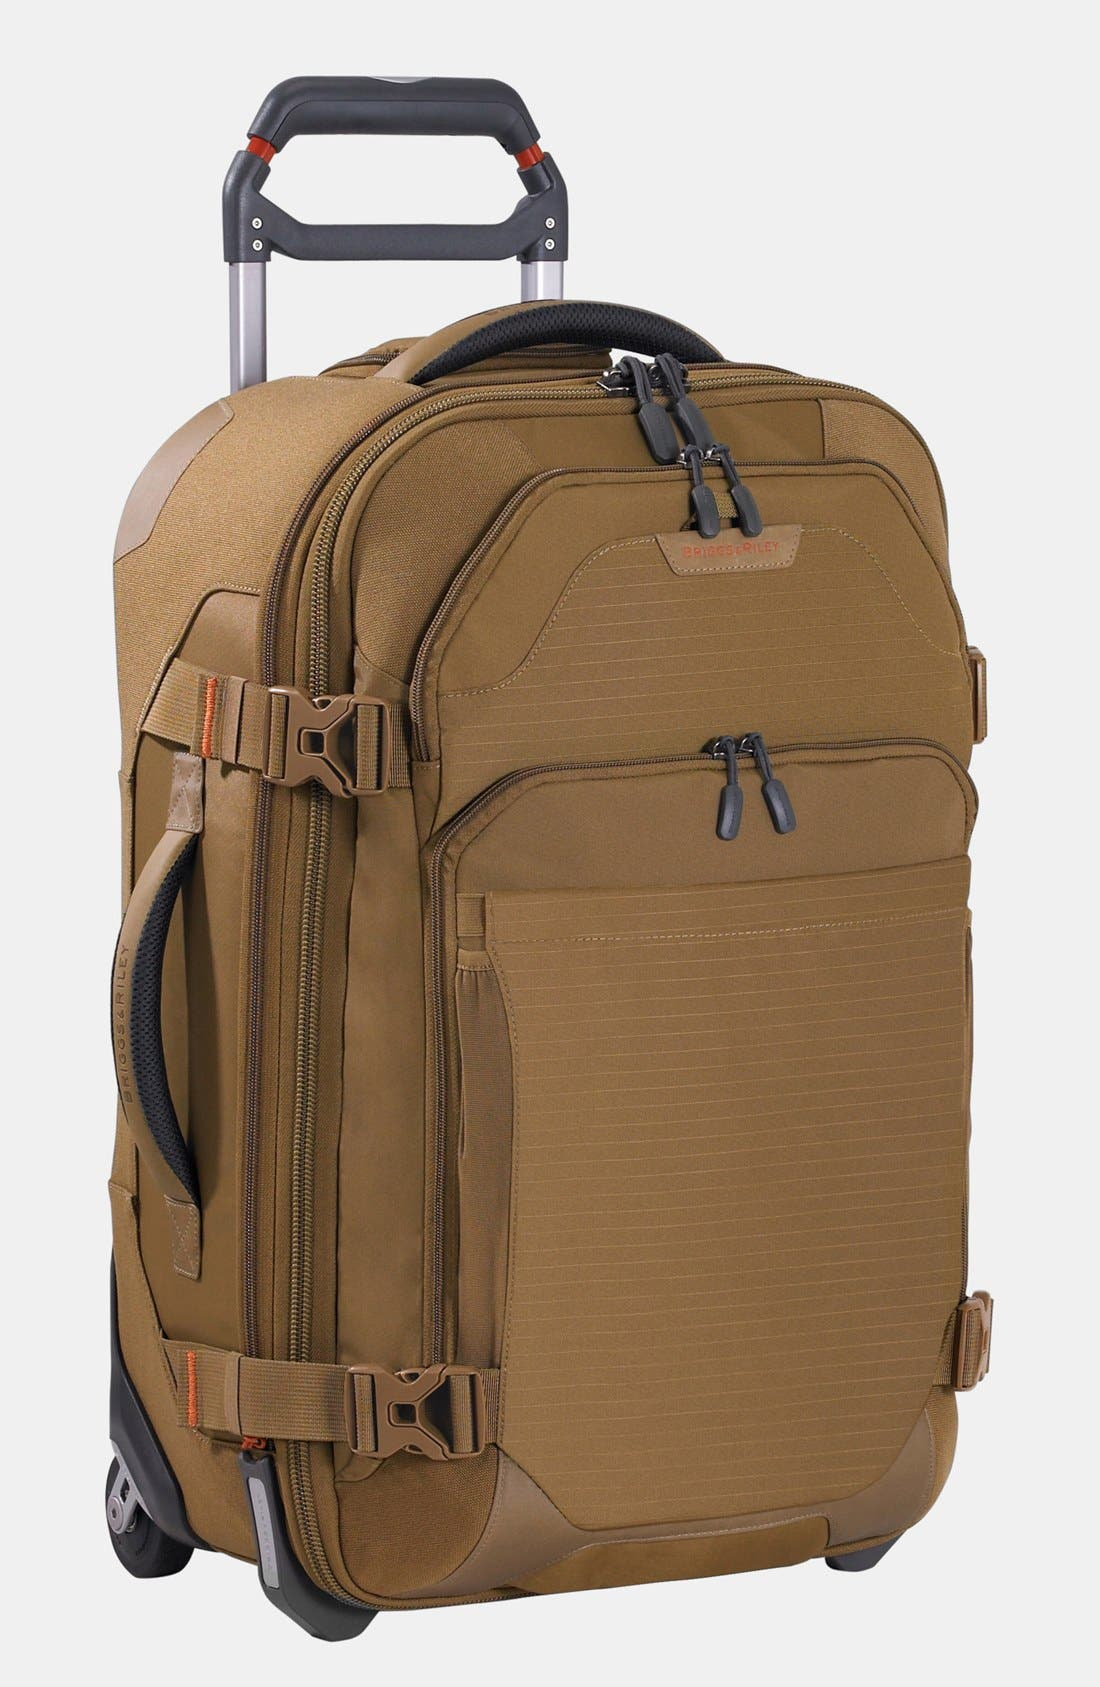 Main Image - Briggs & Riley 'Explore' Upright Carry-On (22 Inch)